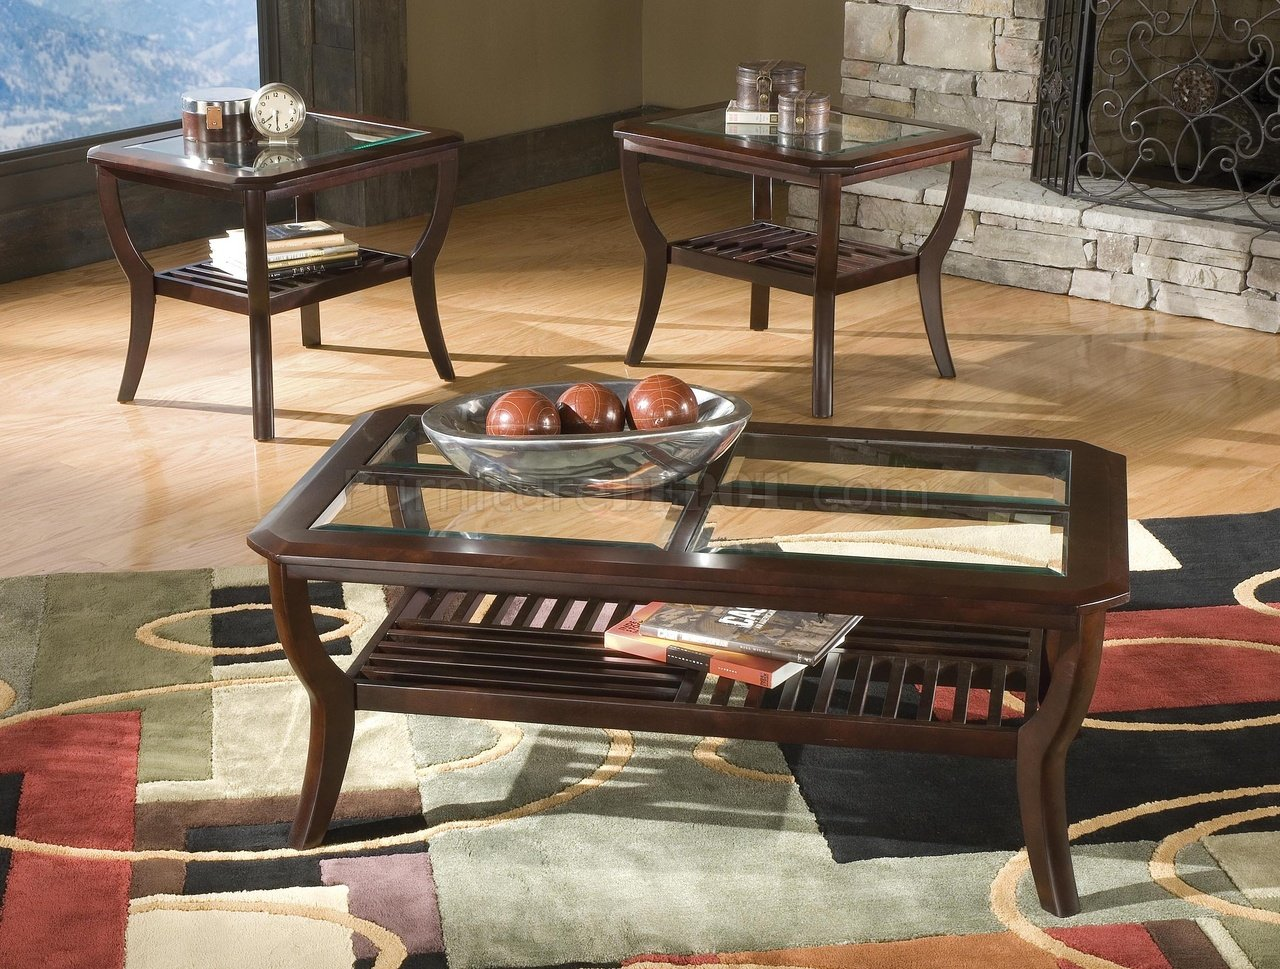 Set Of 3 Glass Tables: Set Of 3 Dark Cherry Modern Coffee & End Tables W/Glass Tops